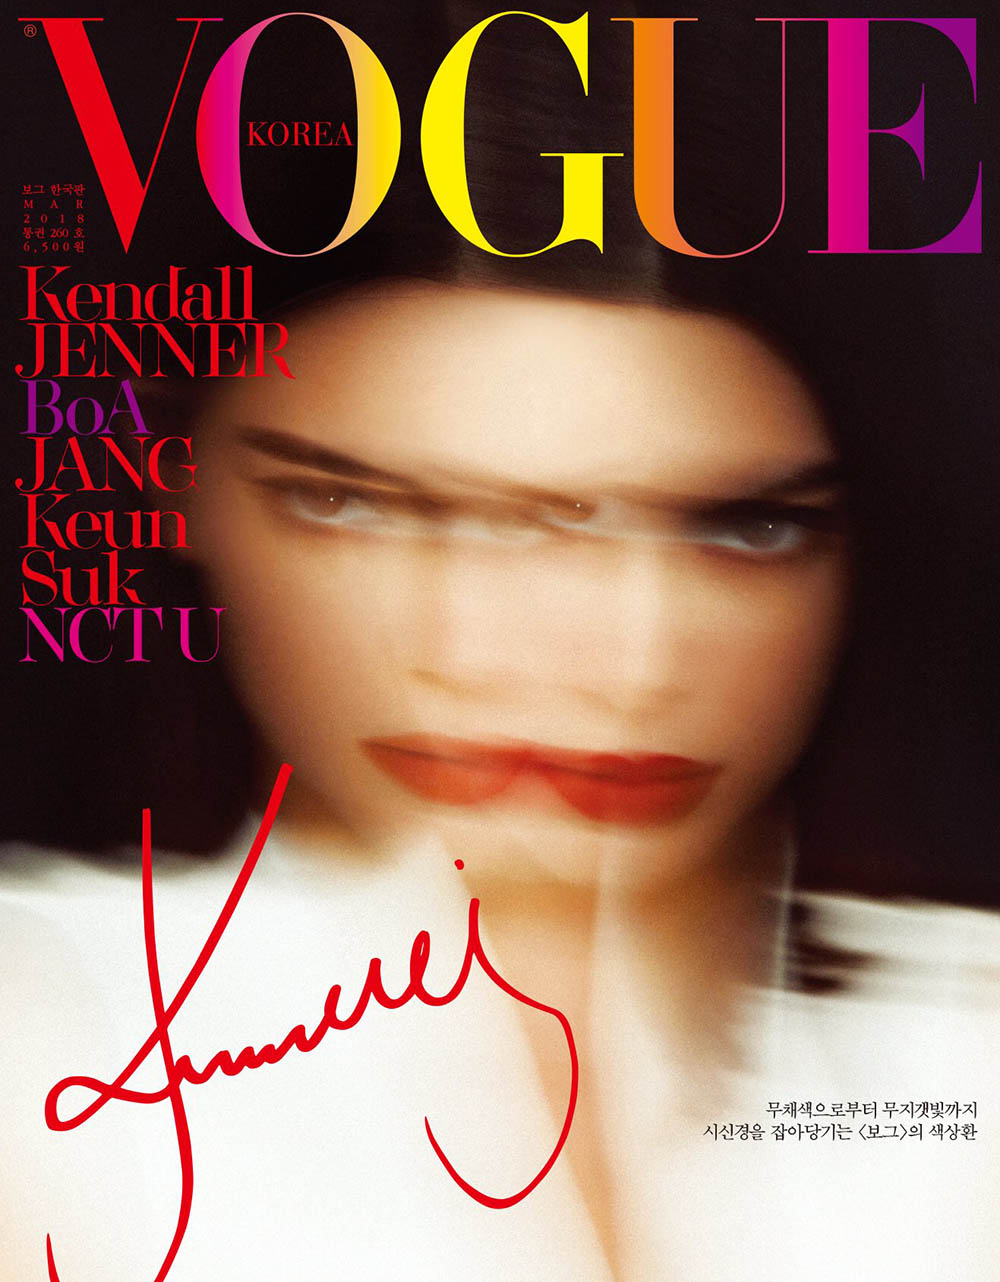 Kendall Jenner covers Vogue Korea March 2018 by Hyea W. Kang